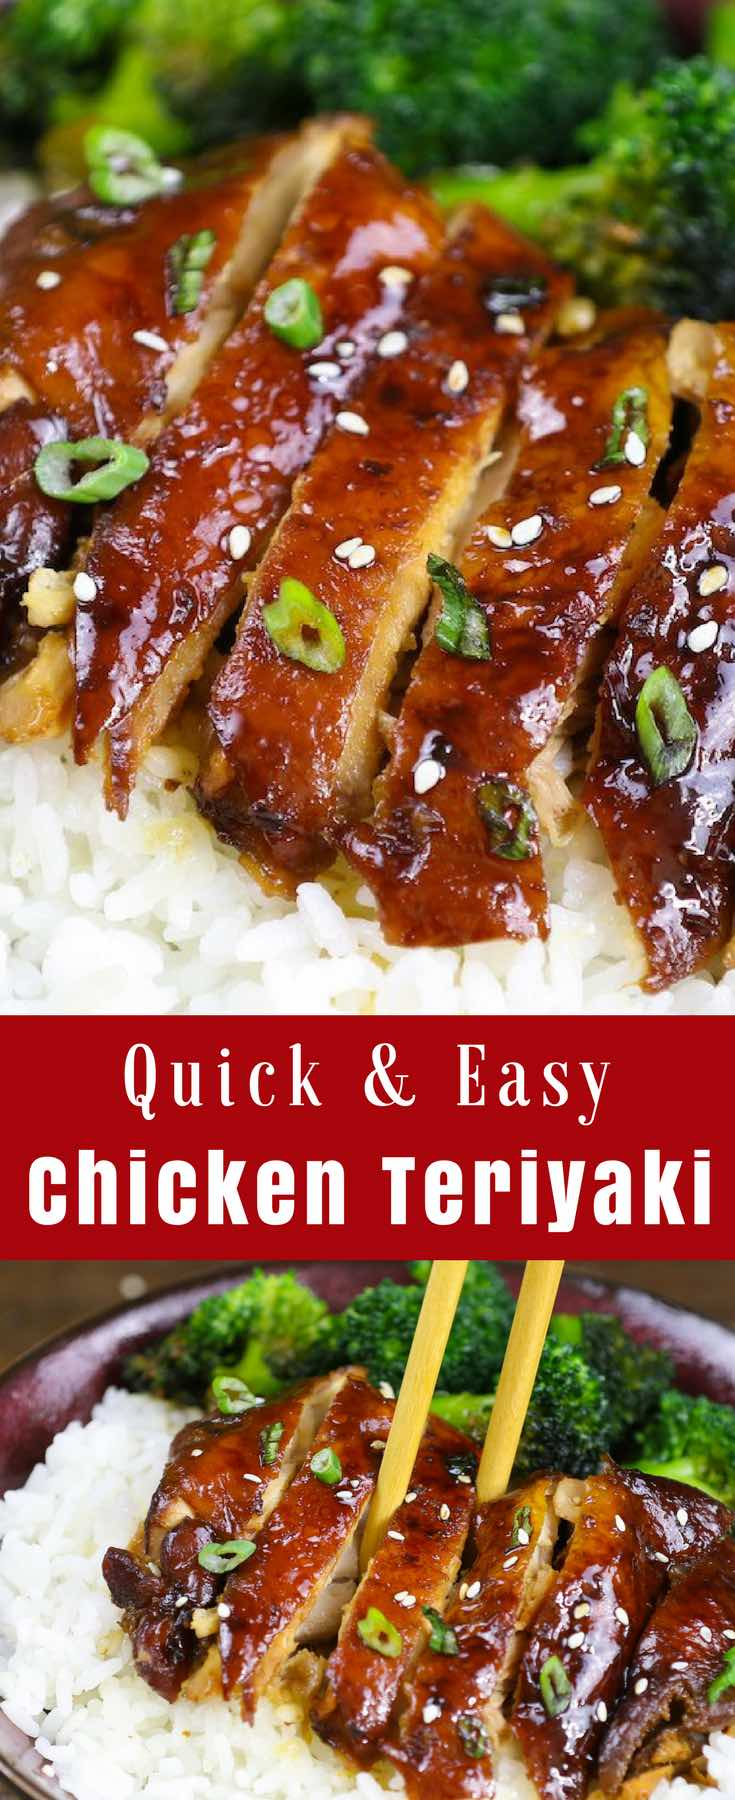 This Chicken Teriyaki is a quick weeknight dinner that's so easy to make. Tender chicken thighs are cooked in a mouth-watering homemade sweet and savory authentic teriyaki sauce. #ChickenTeriyaki #TeriyakiChicken